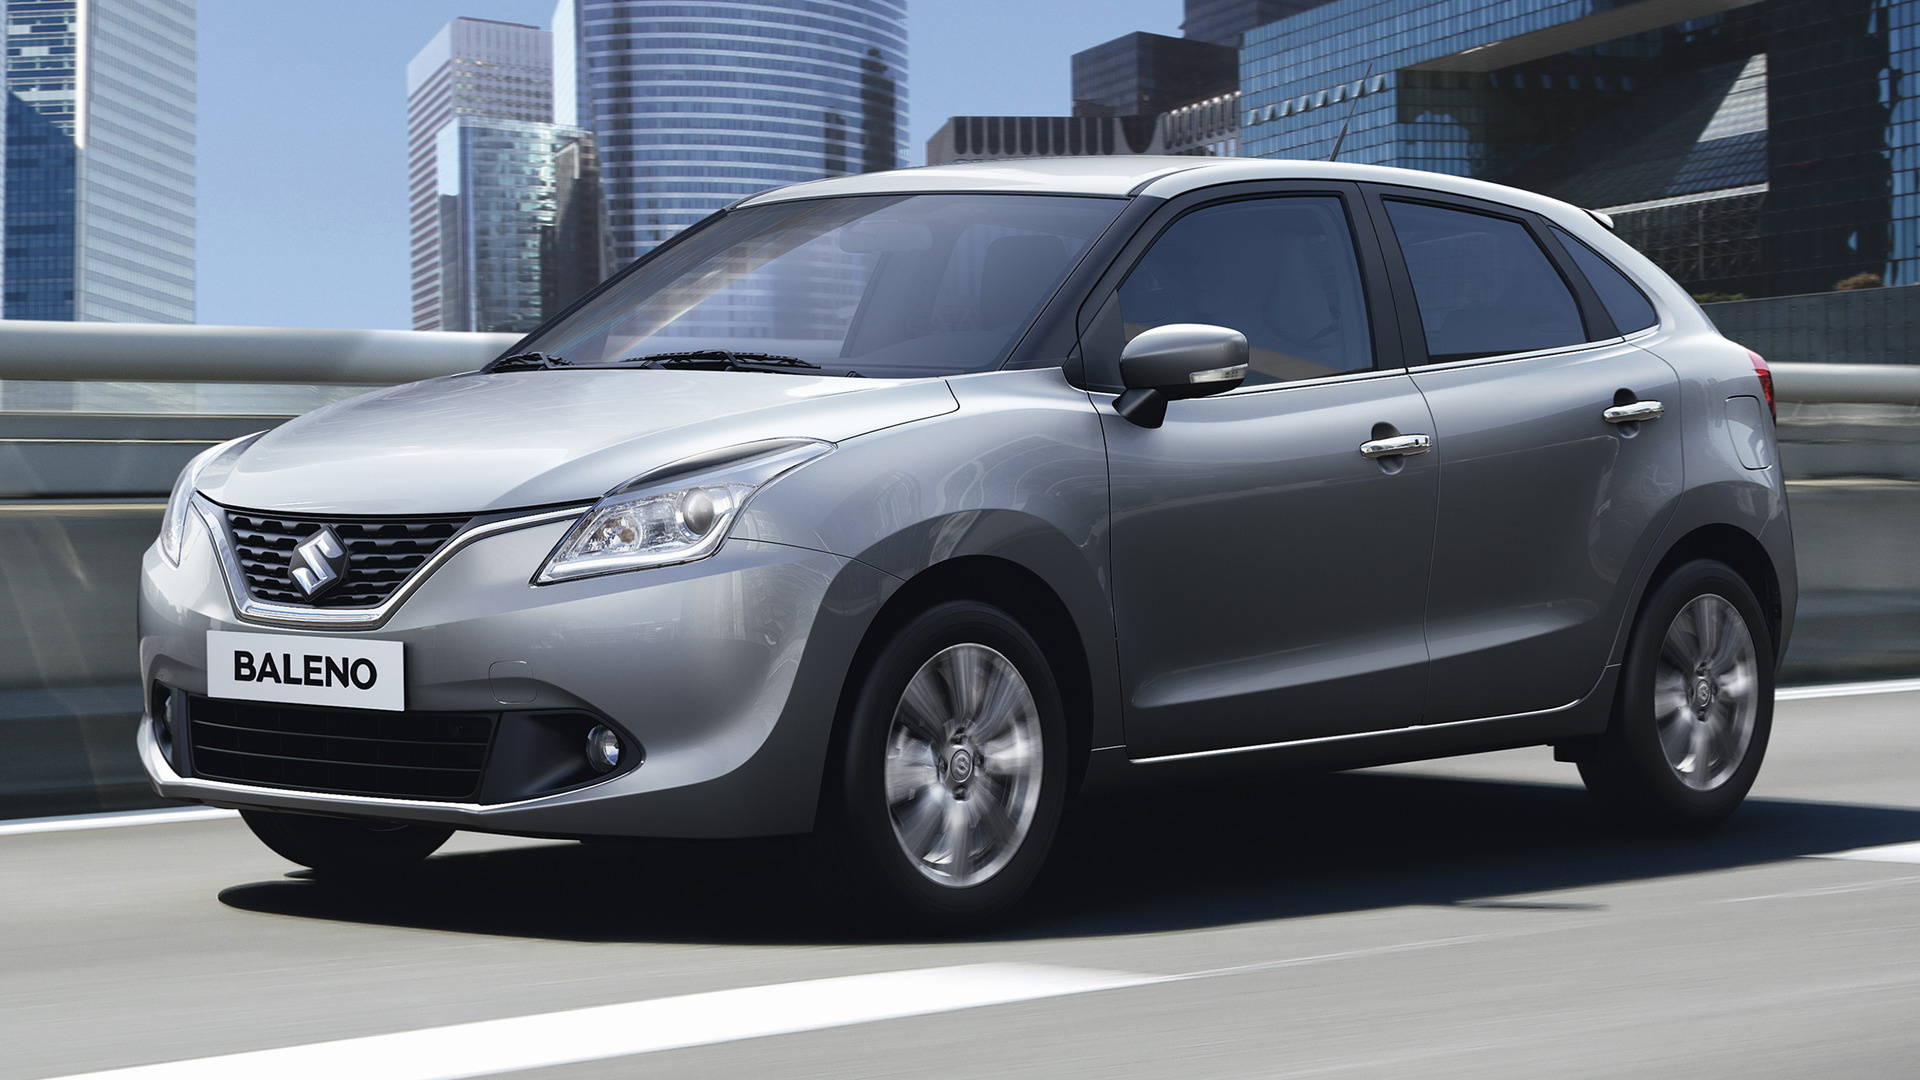 2015 Suzuki Baleno Wallpapers And Hd Images Car Pixel